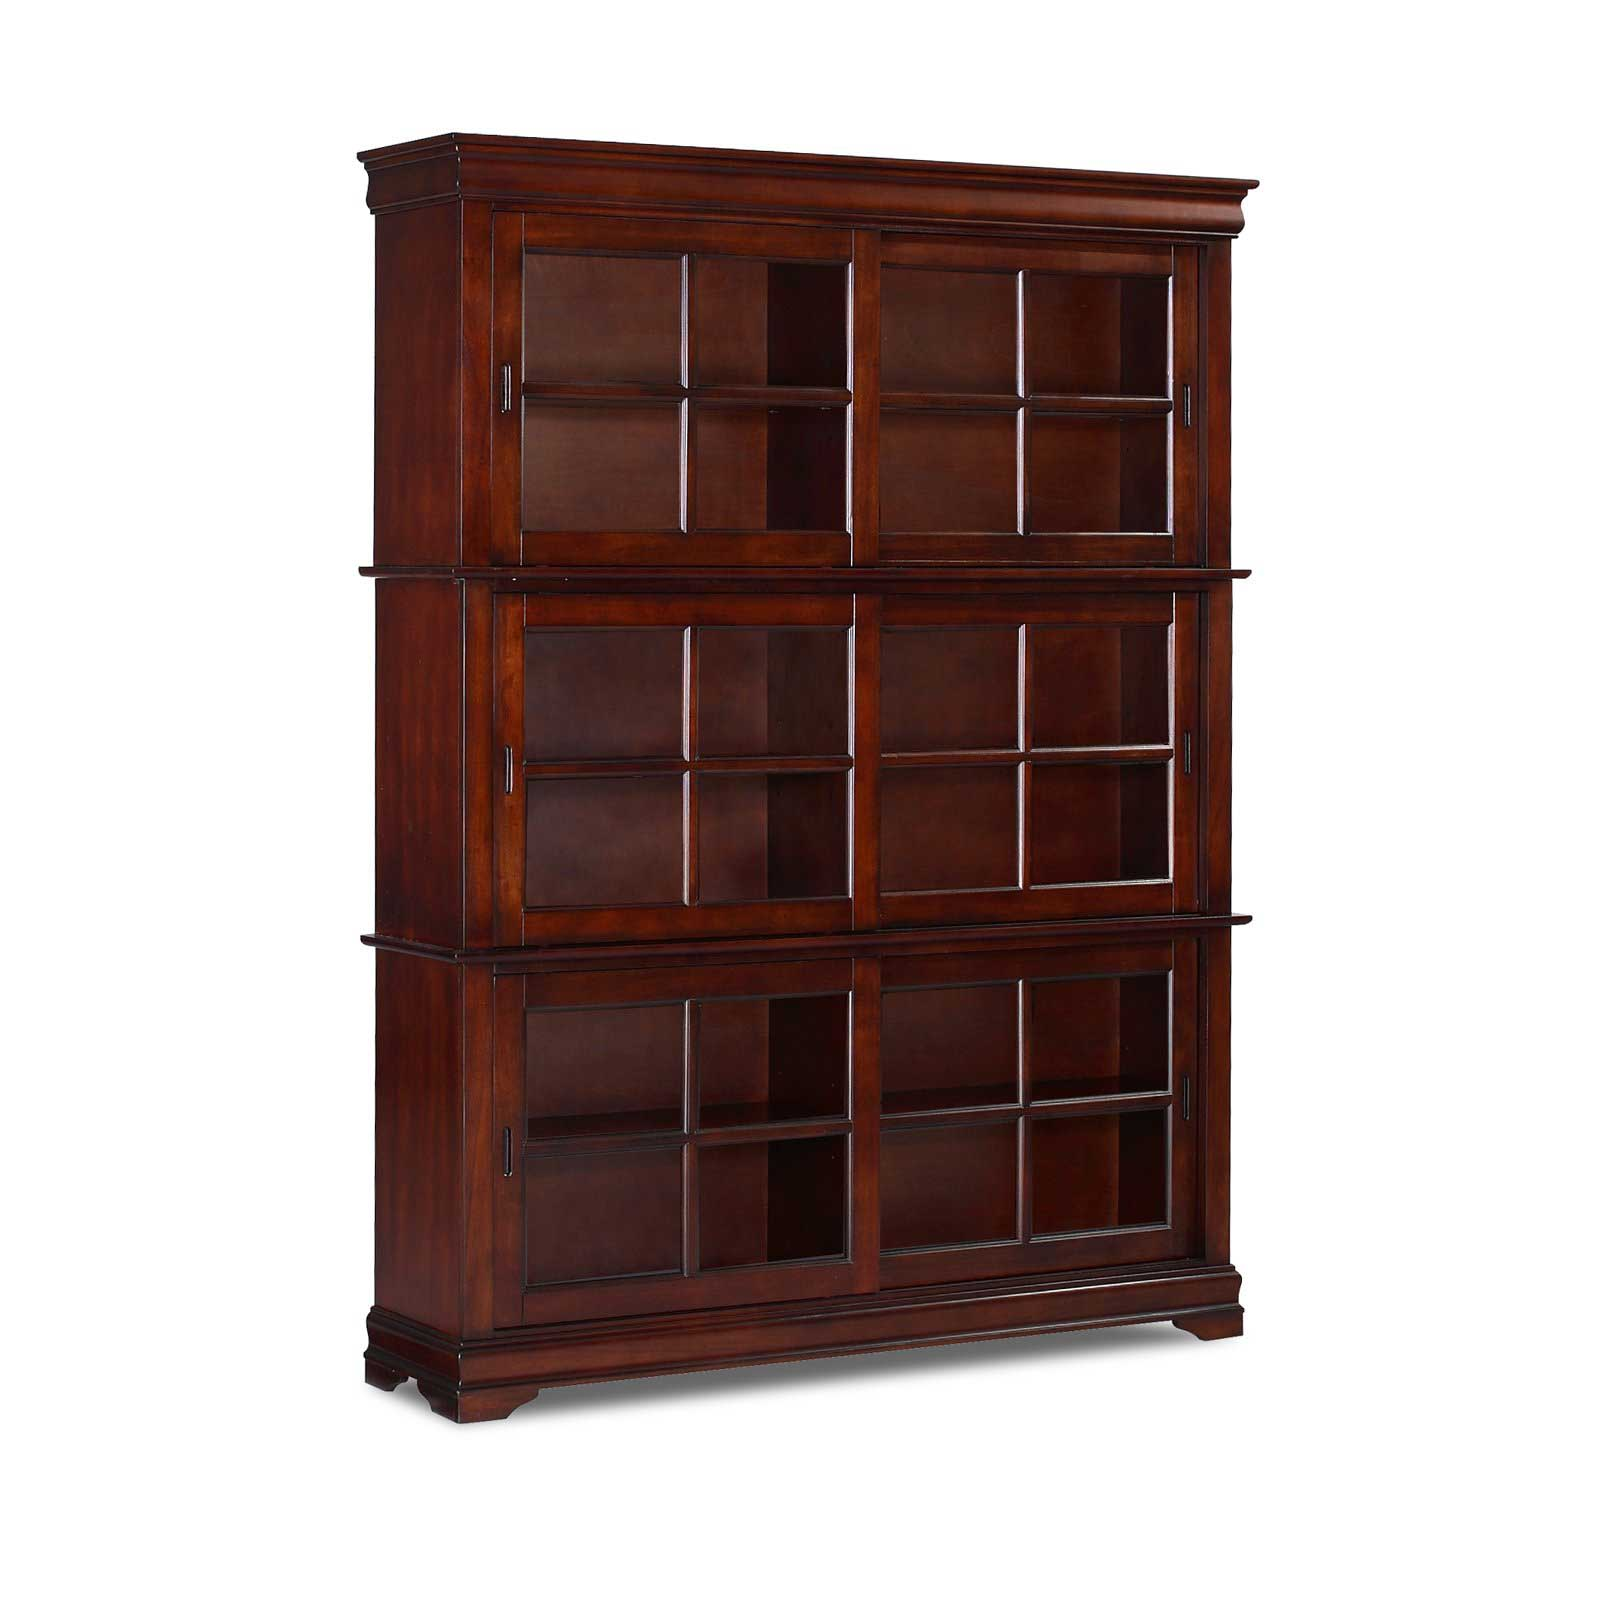 Image of: Large Barrister Bookcase